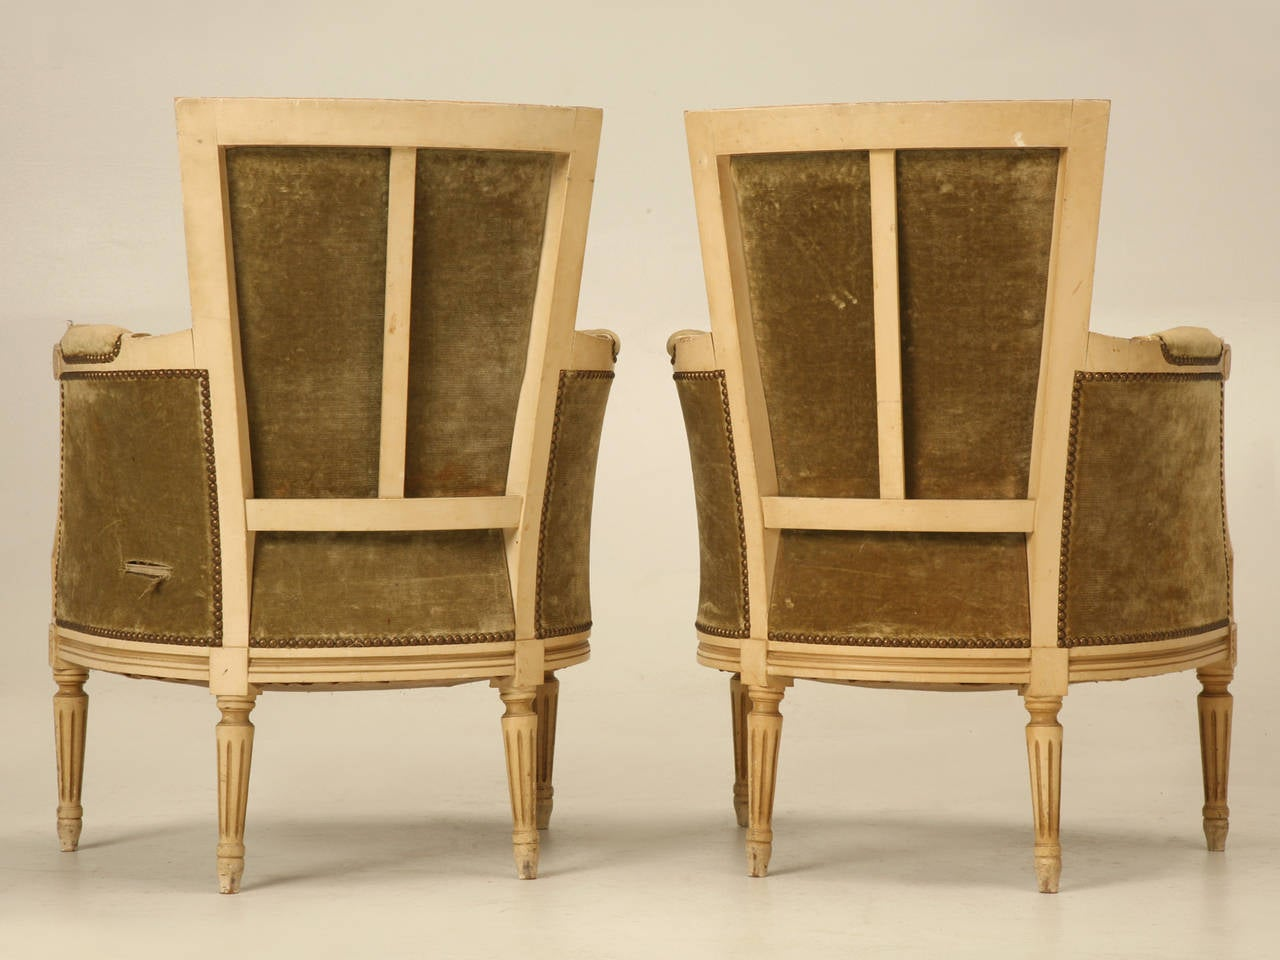 Louis XVI Style Bergere Chairs in Original Paint 10